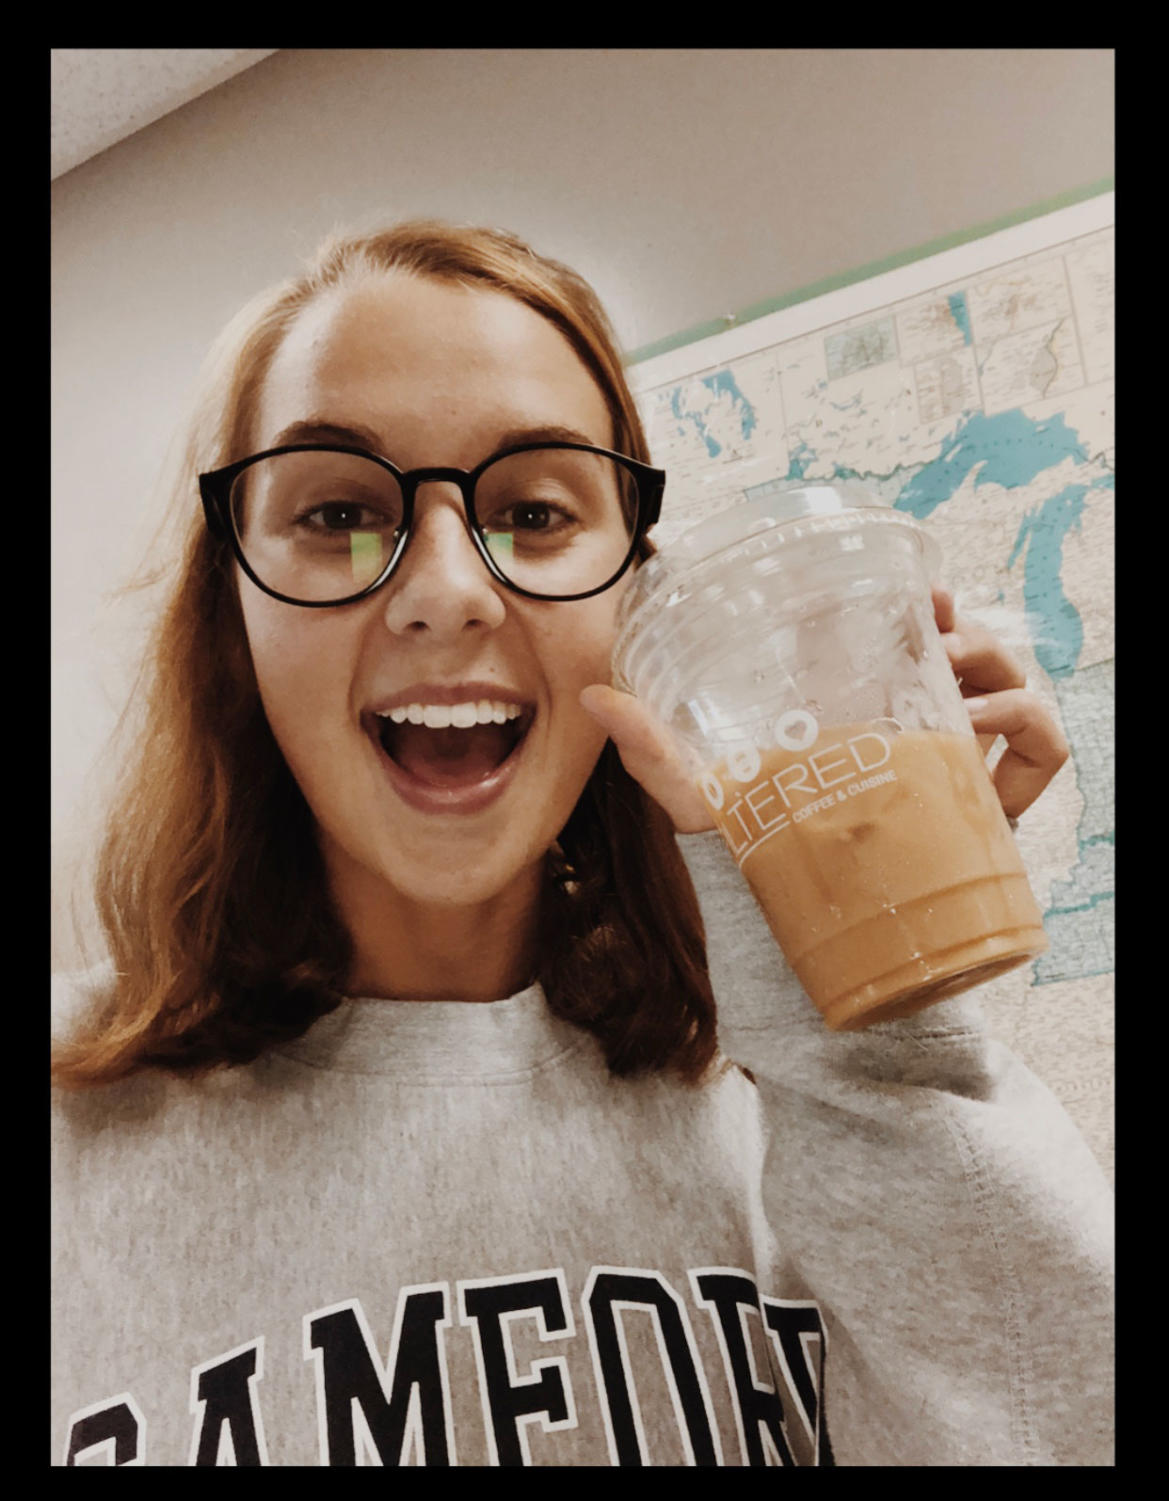 During sixth period, Madison poses with her caramel cold brew from FIlterd Coffee and Cuisine.